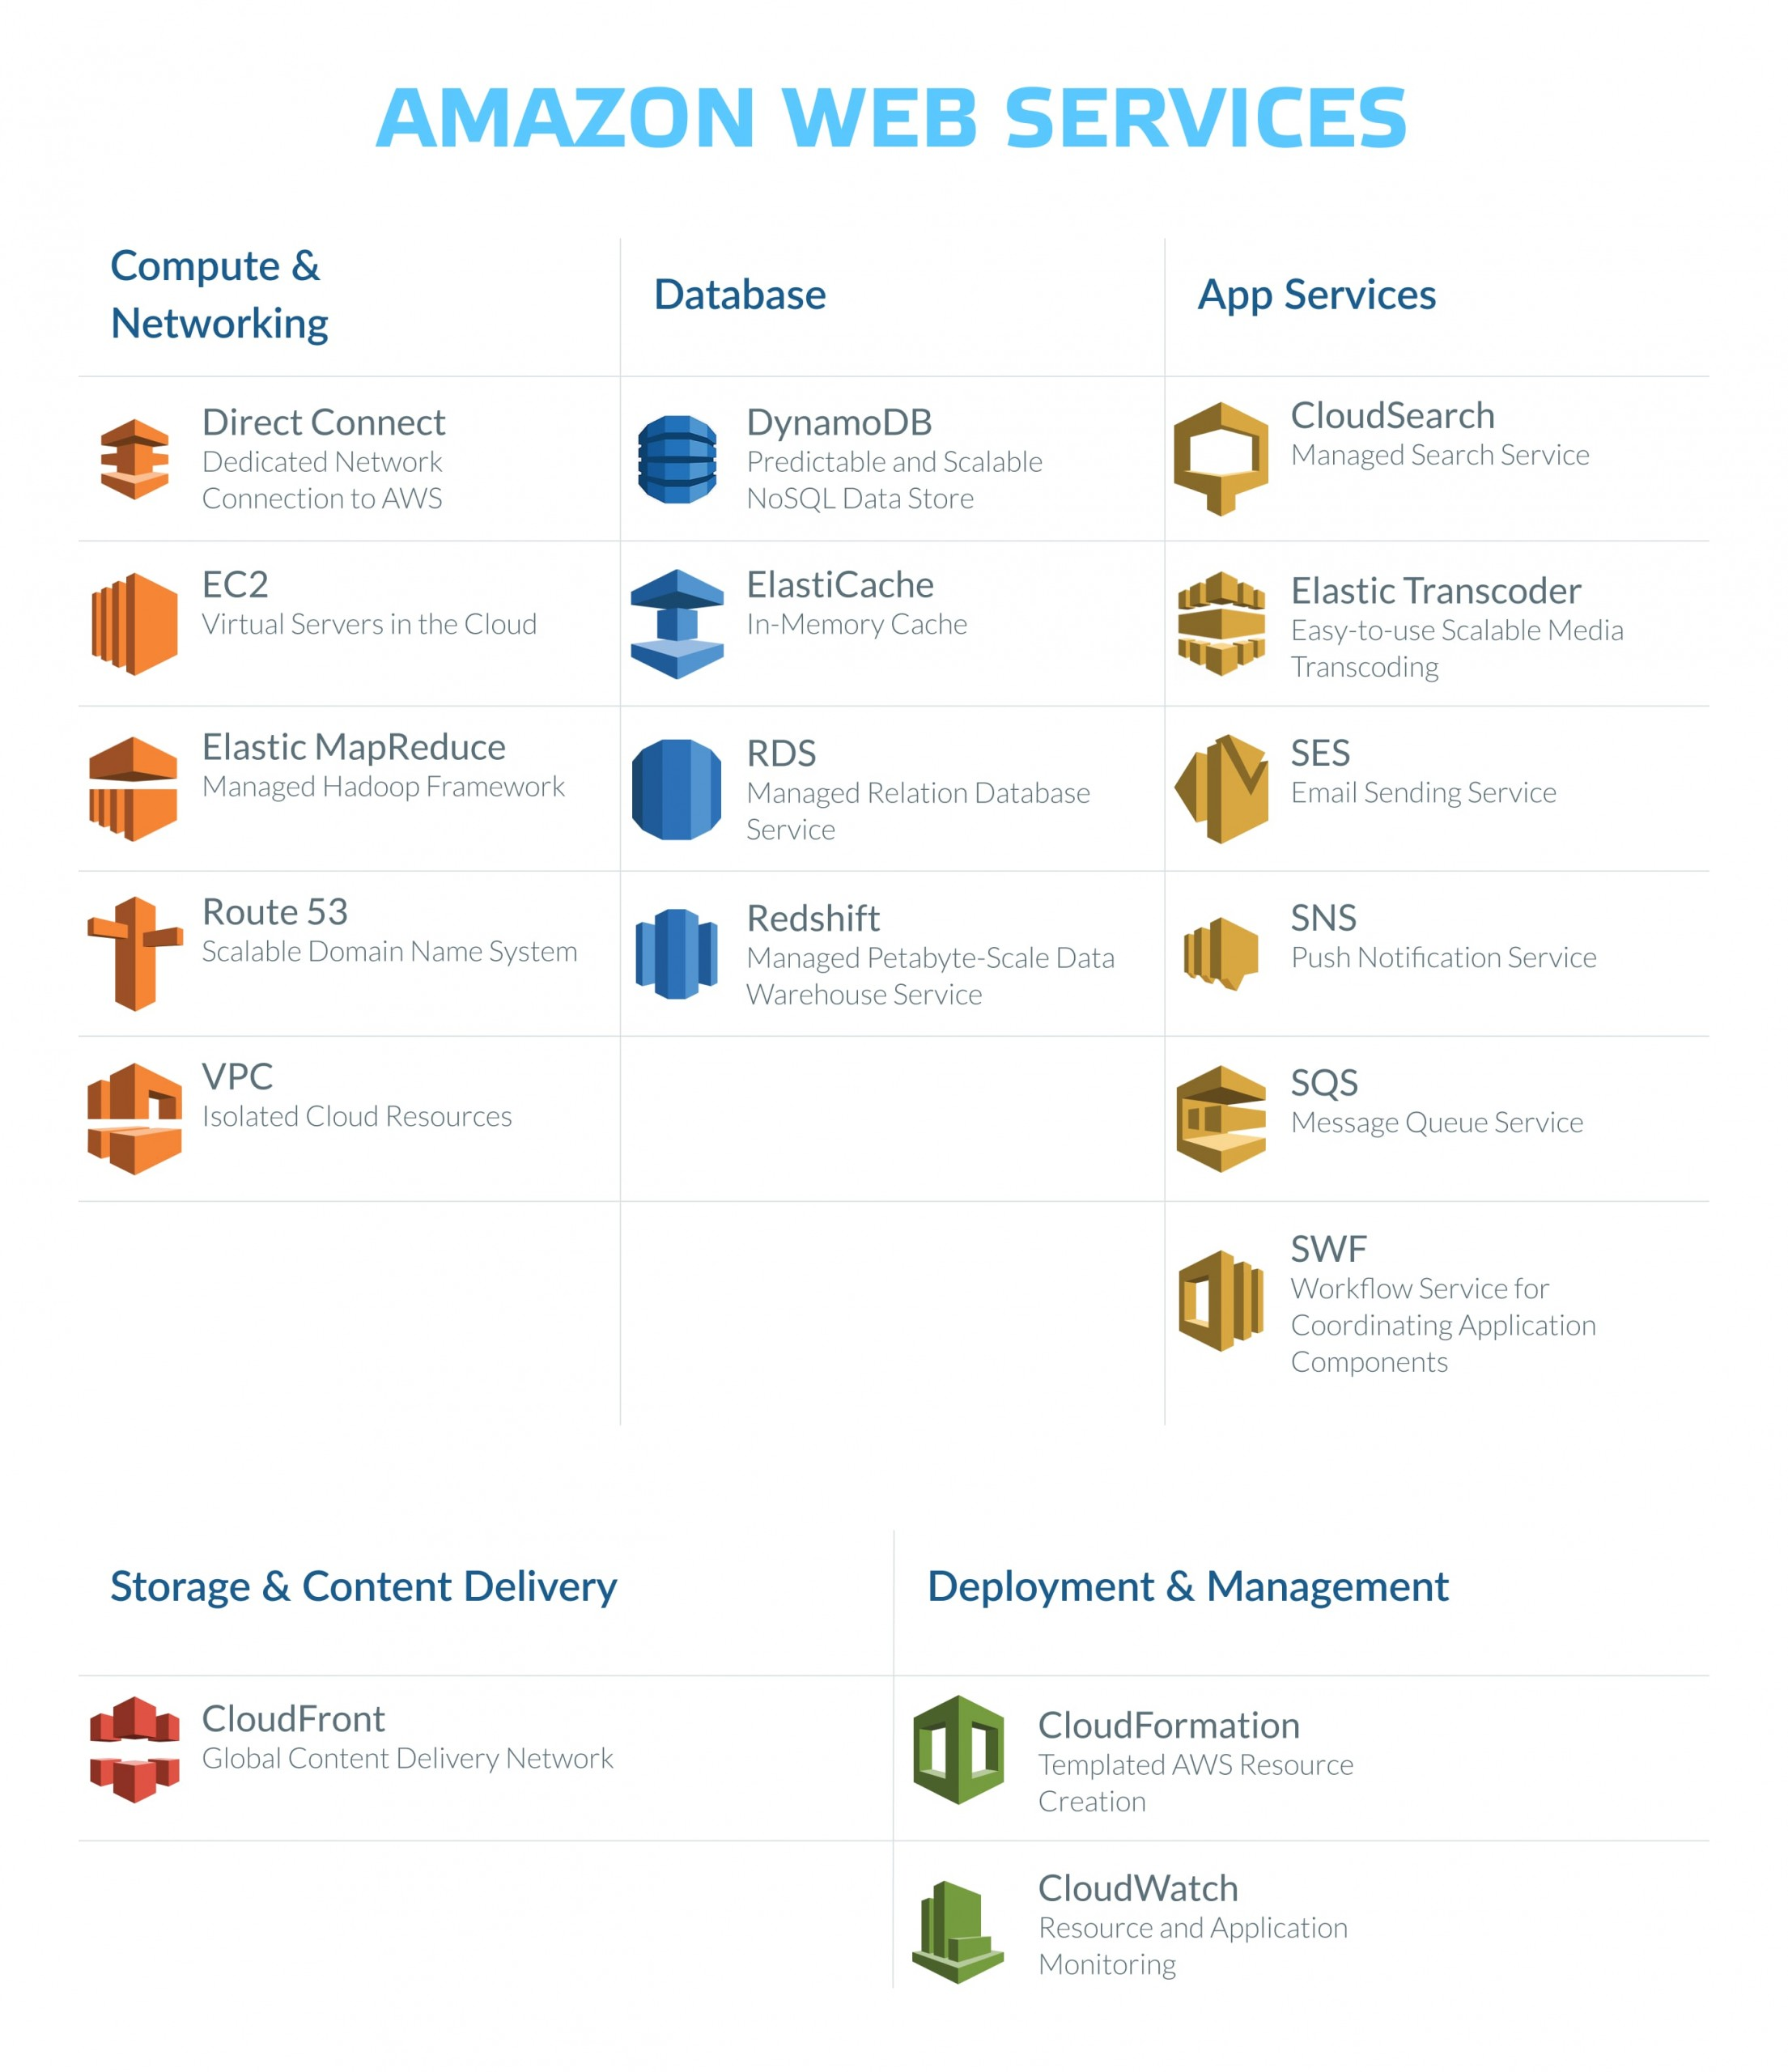 How to use Amazon Ses?